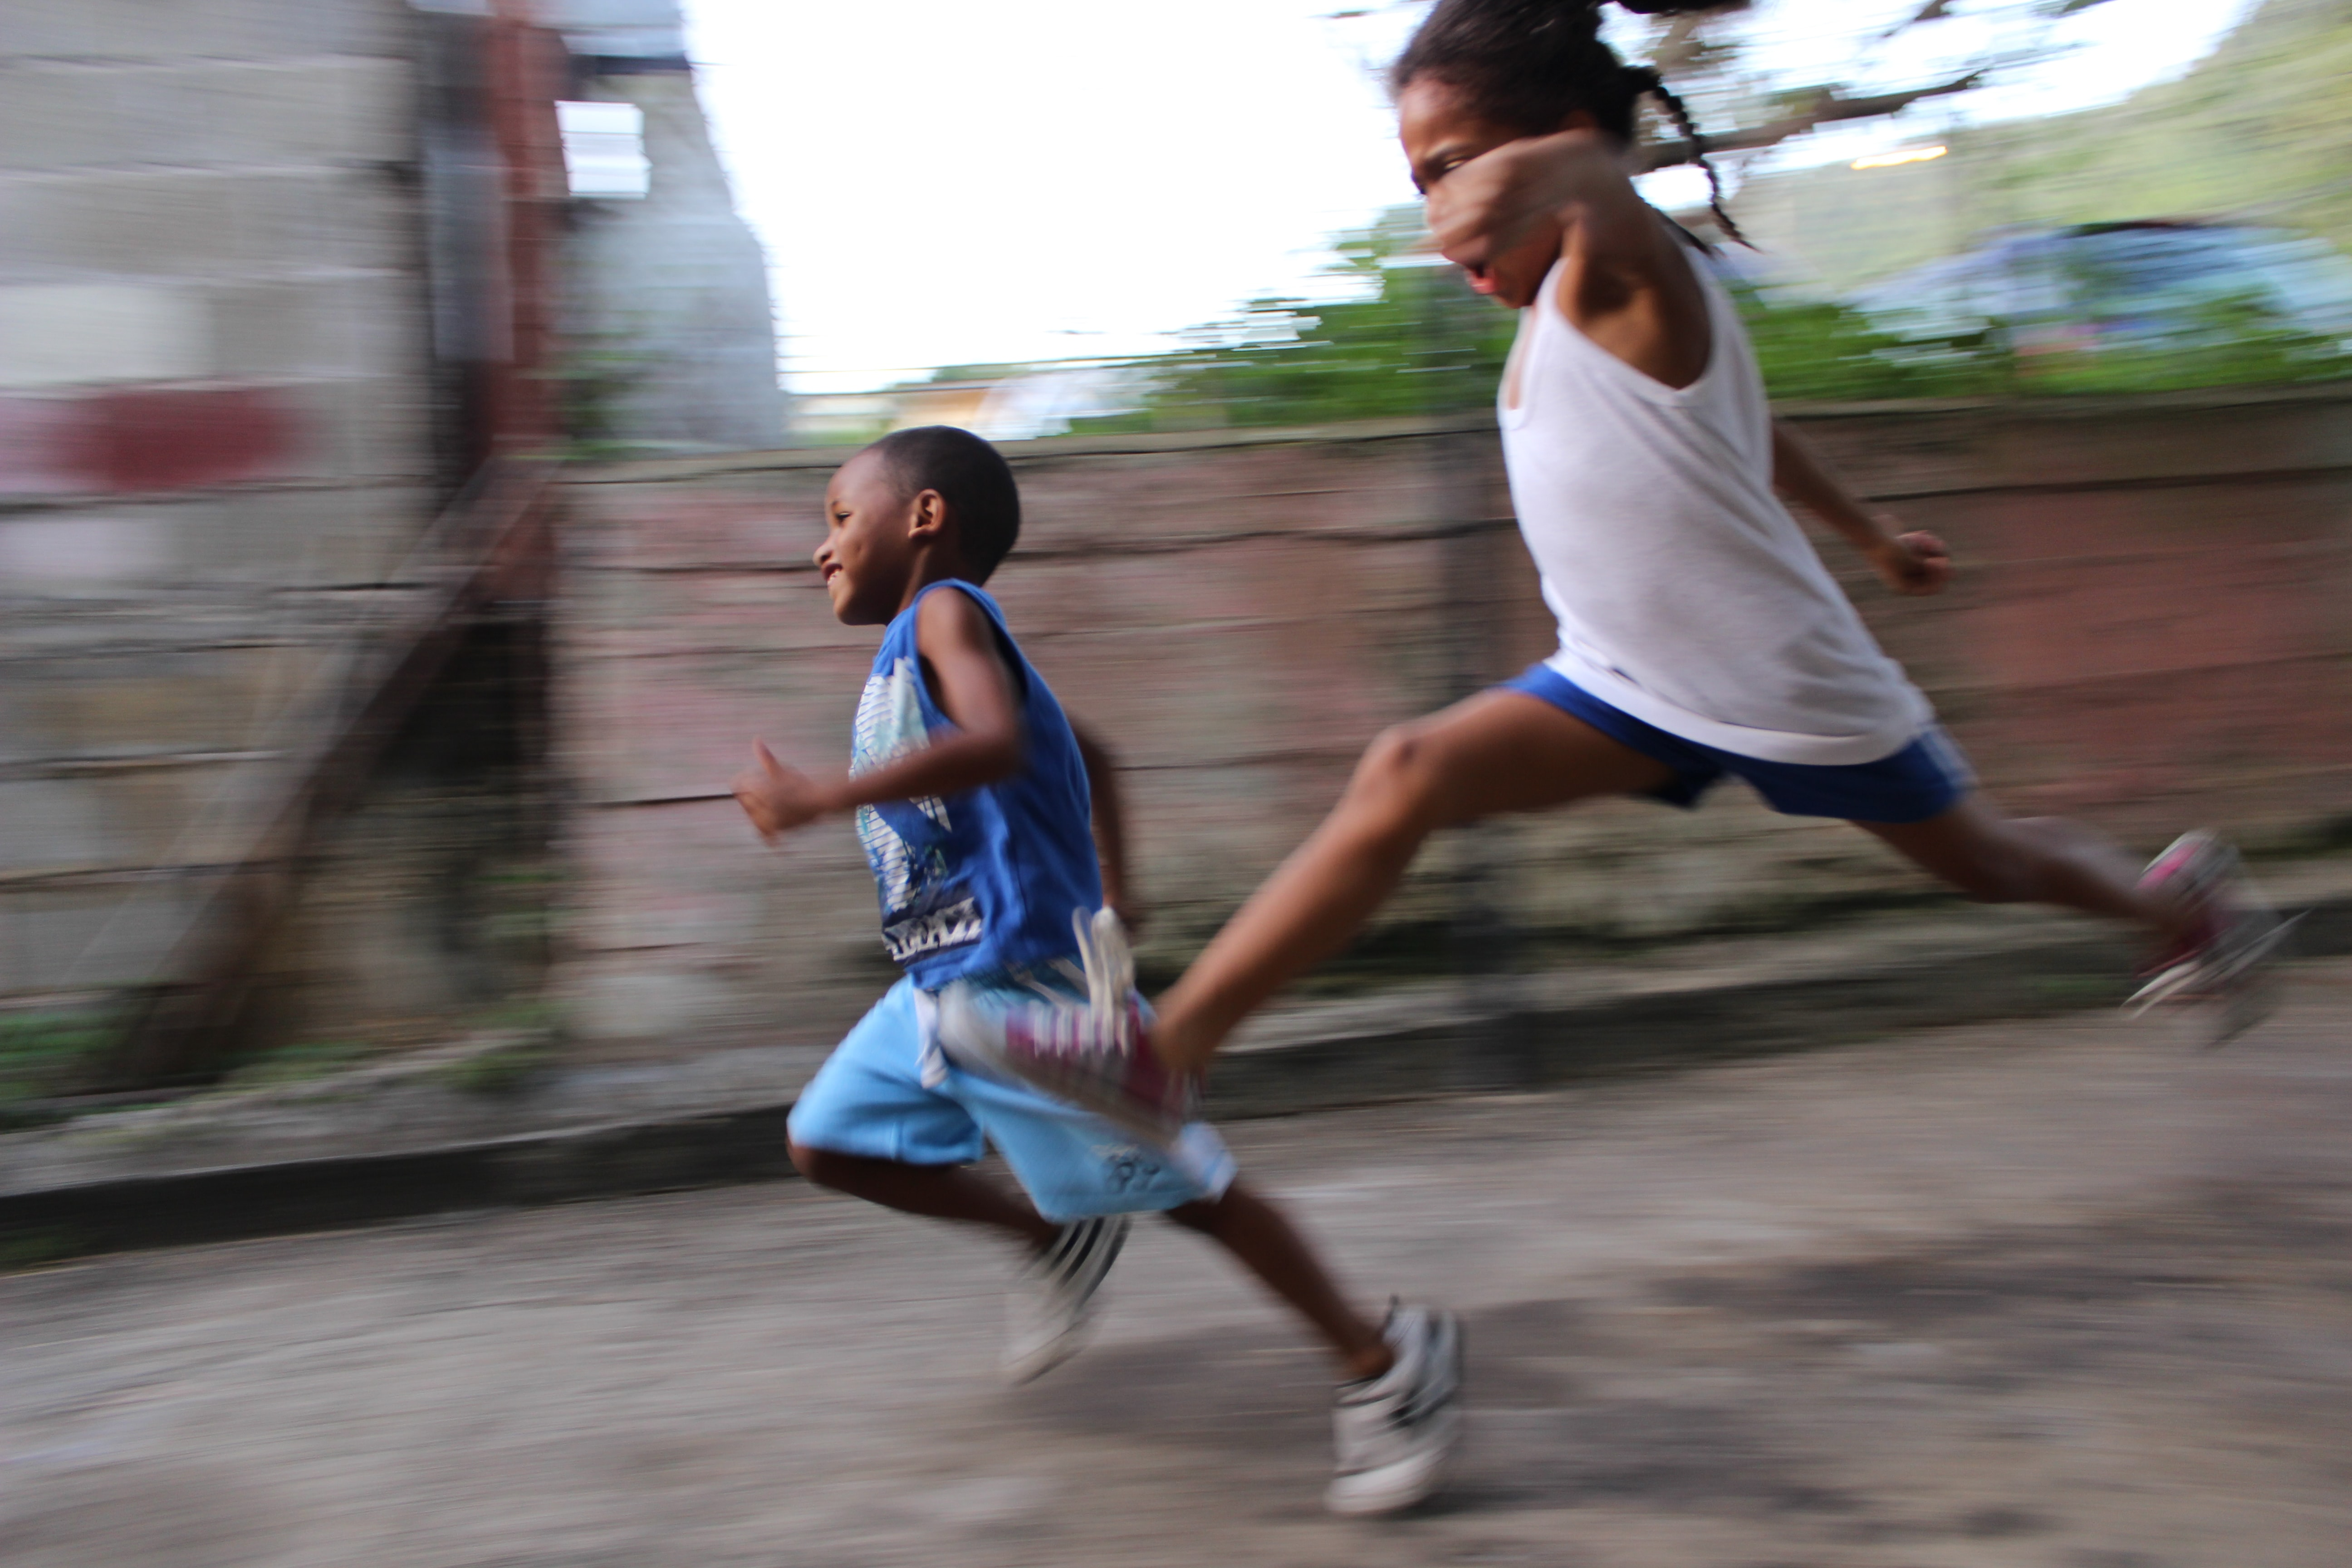 two children running during day time